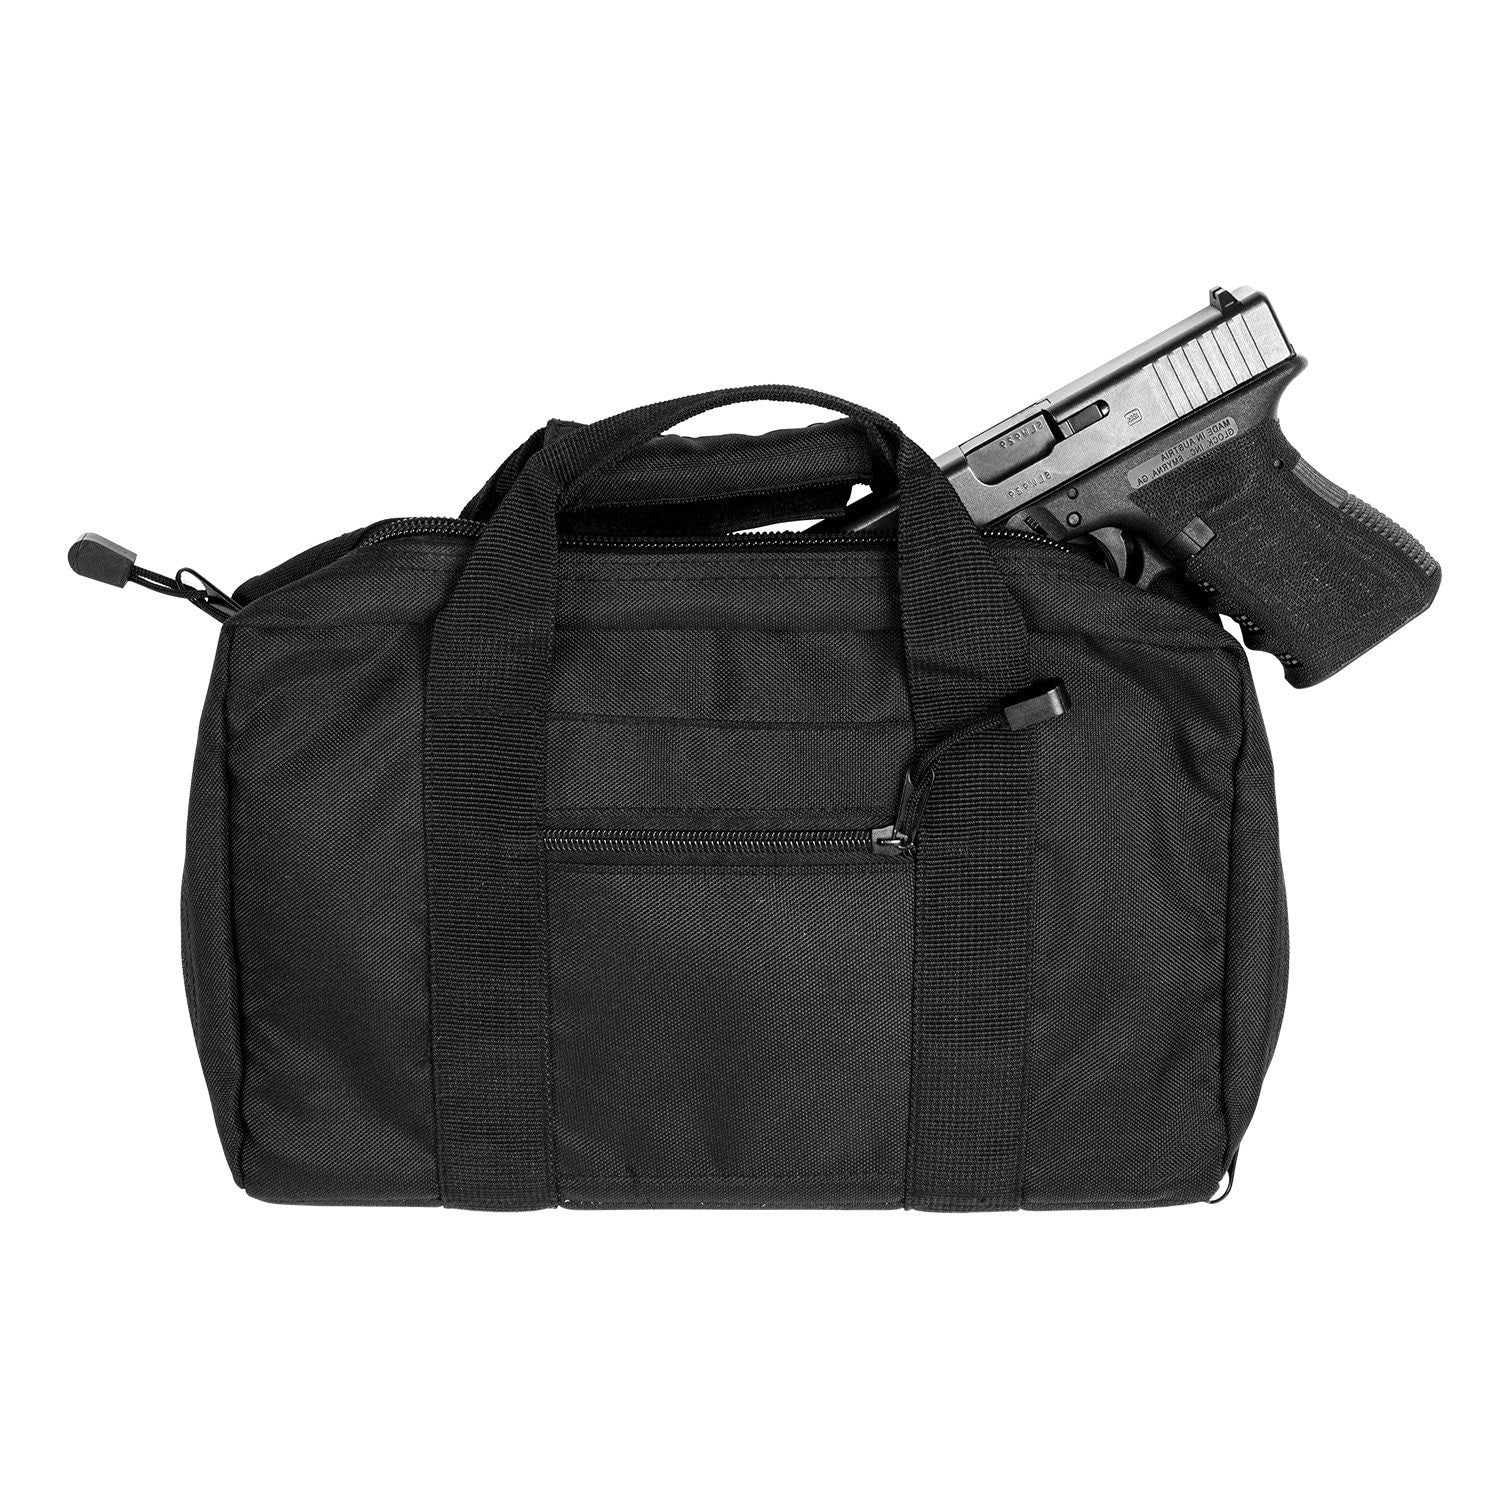 Discrete Double Pistol Case - Black - Pistol Cases - Vism - Colonel Mustard